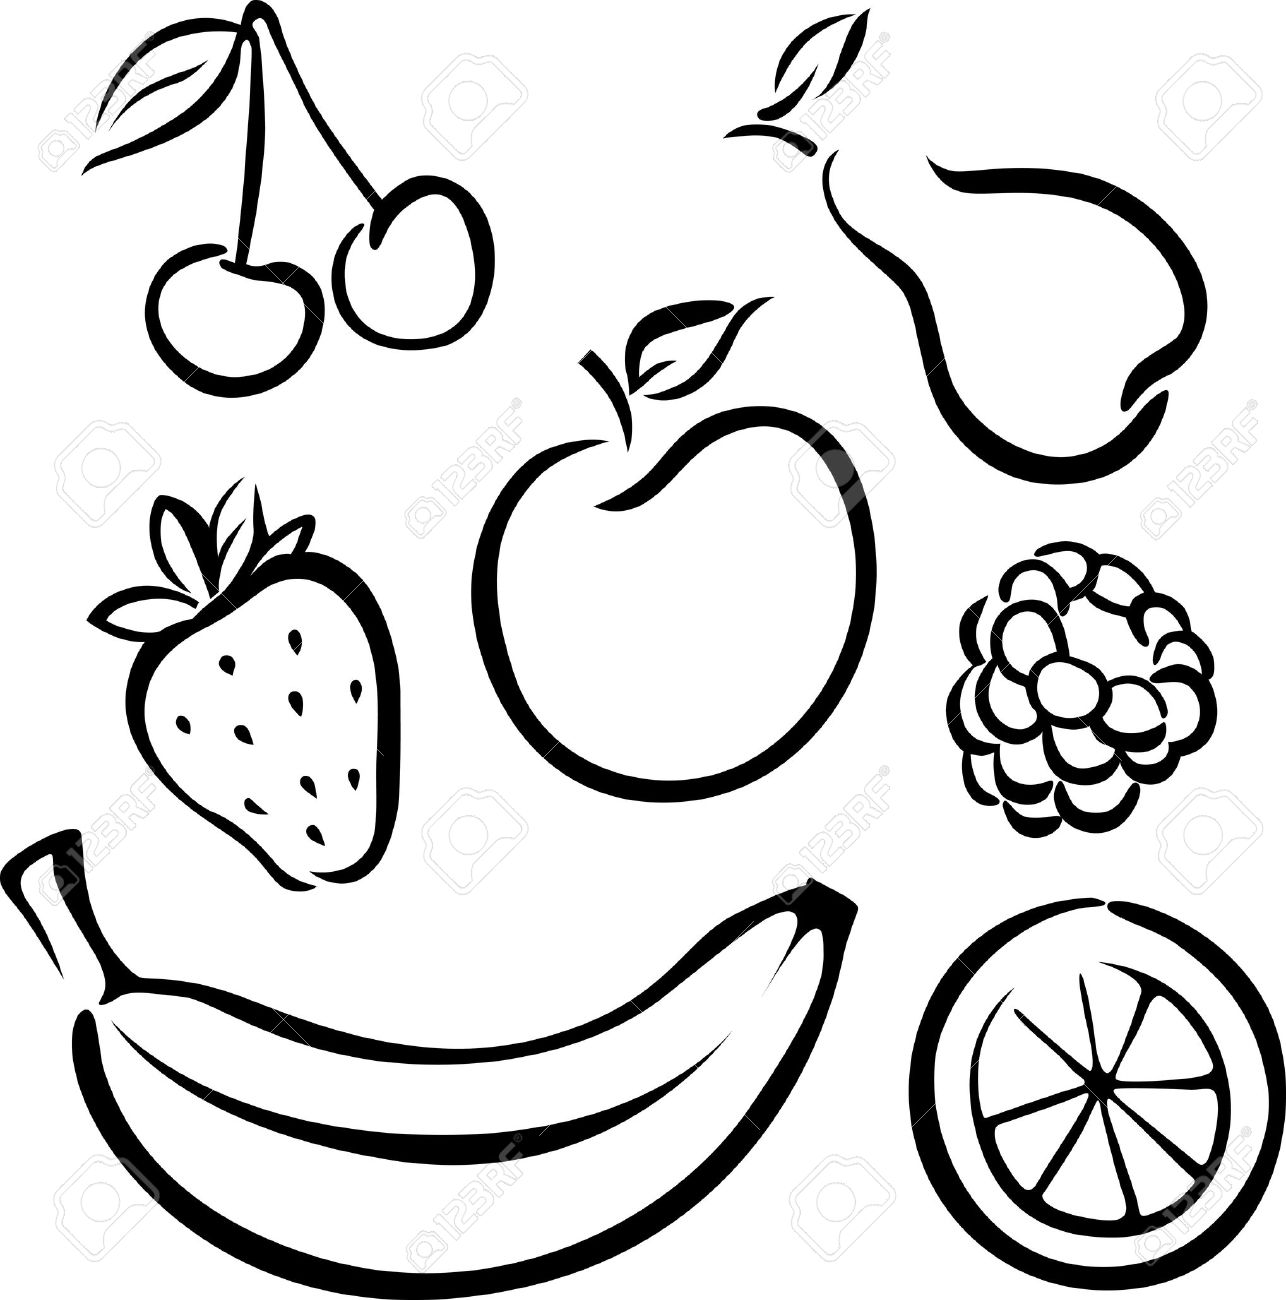 Clipart black and white pictures of fruits image royalty free download Fruit Clipart Black And White   Free download best Fruit Clipart ... image royalty free download